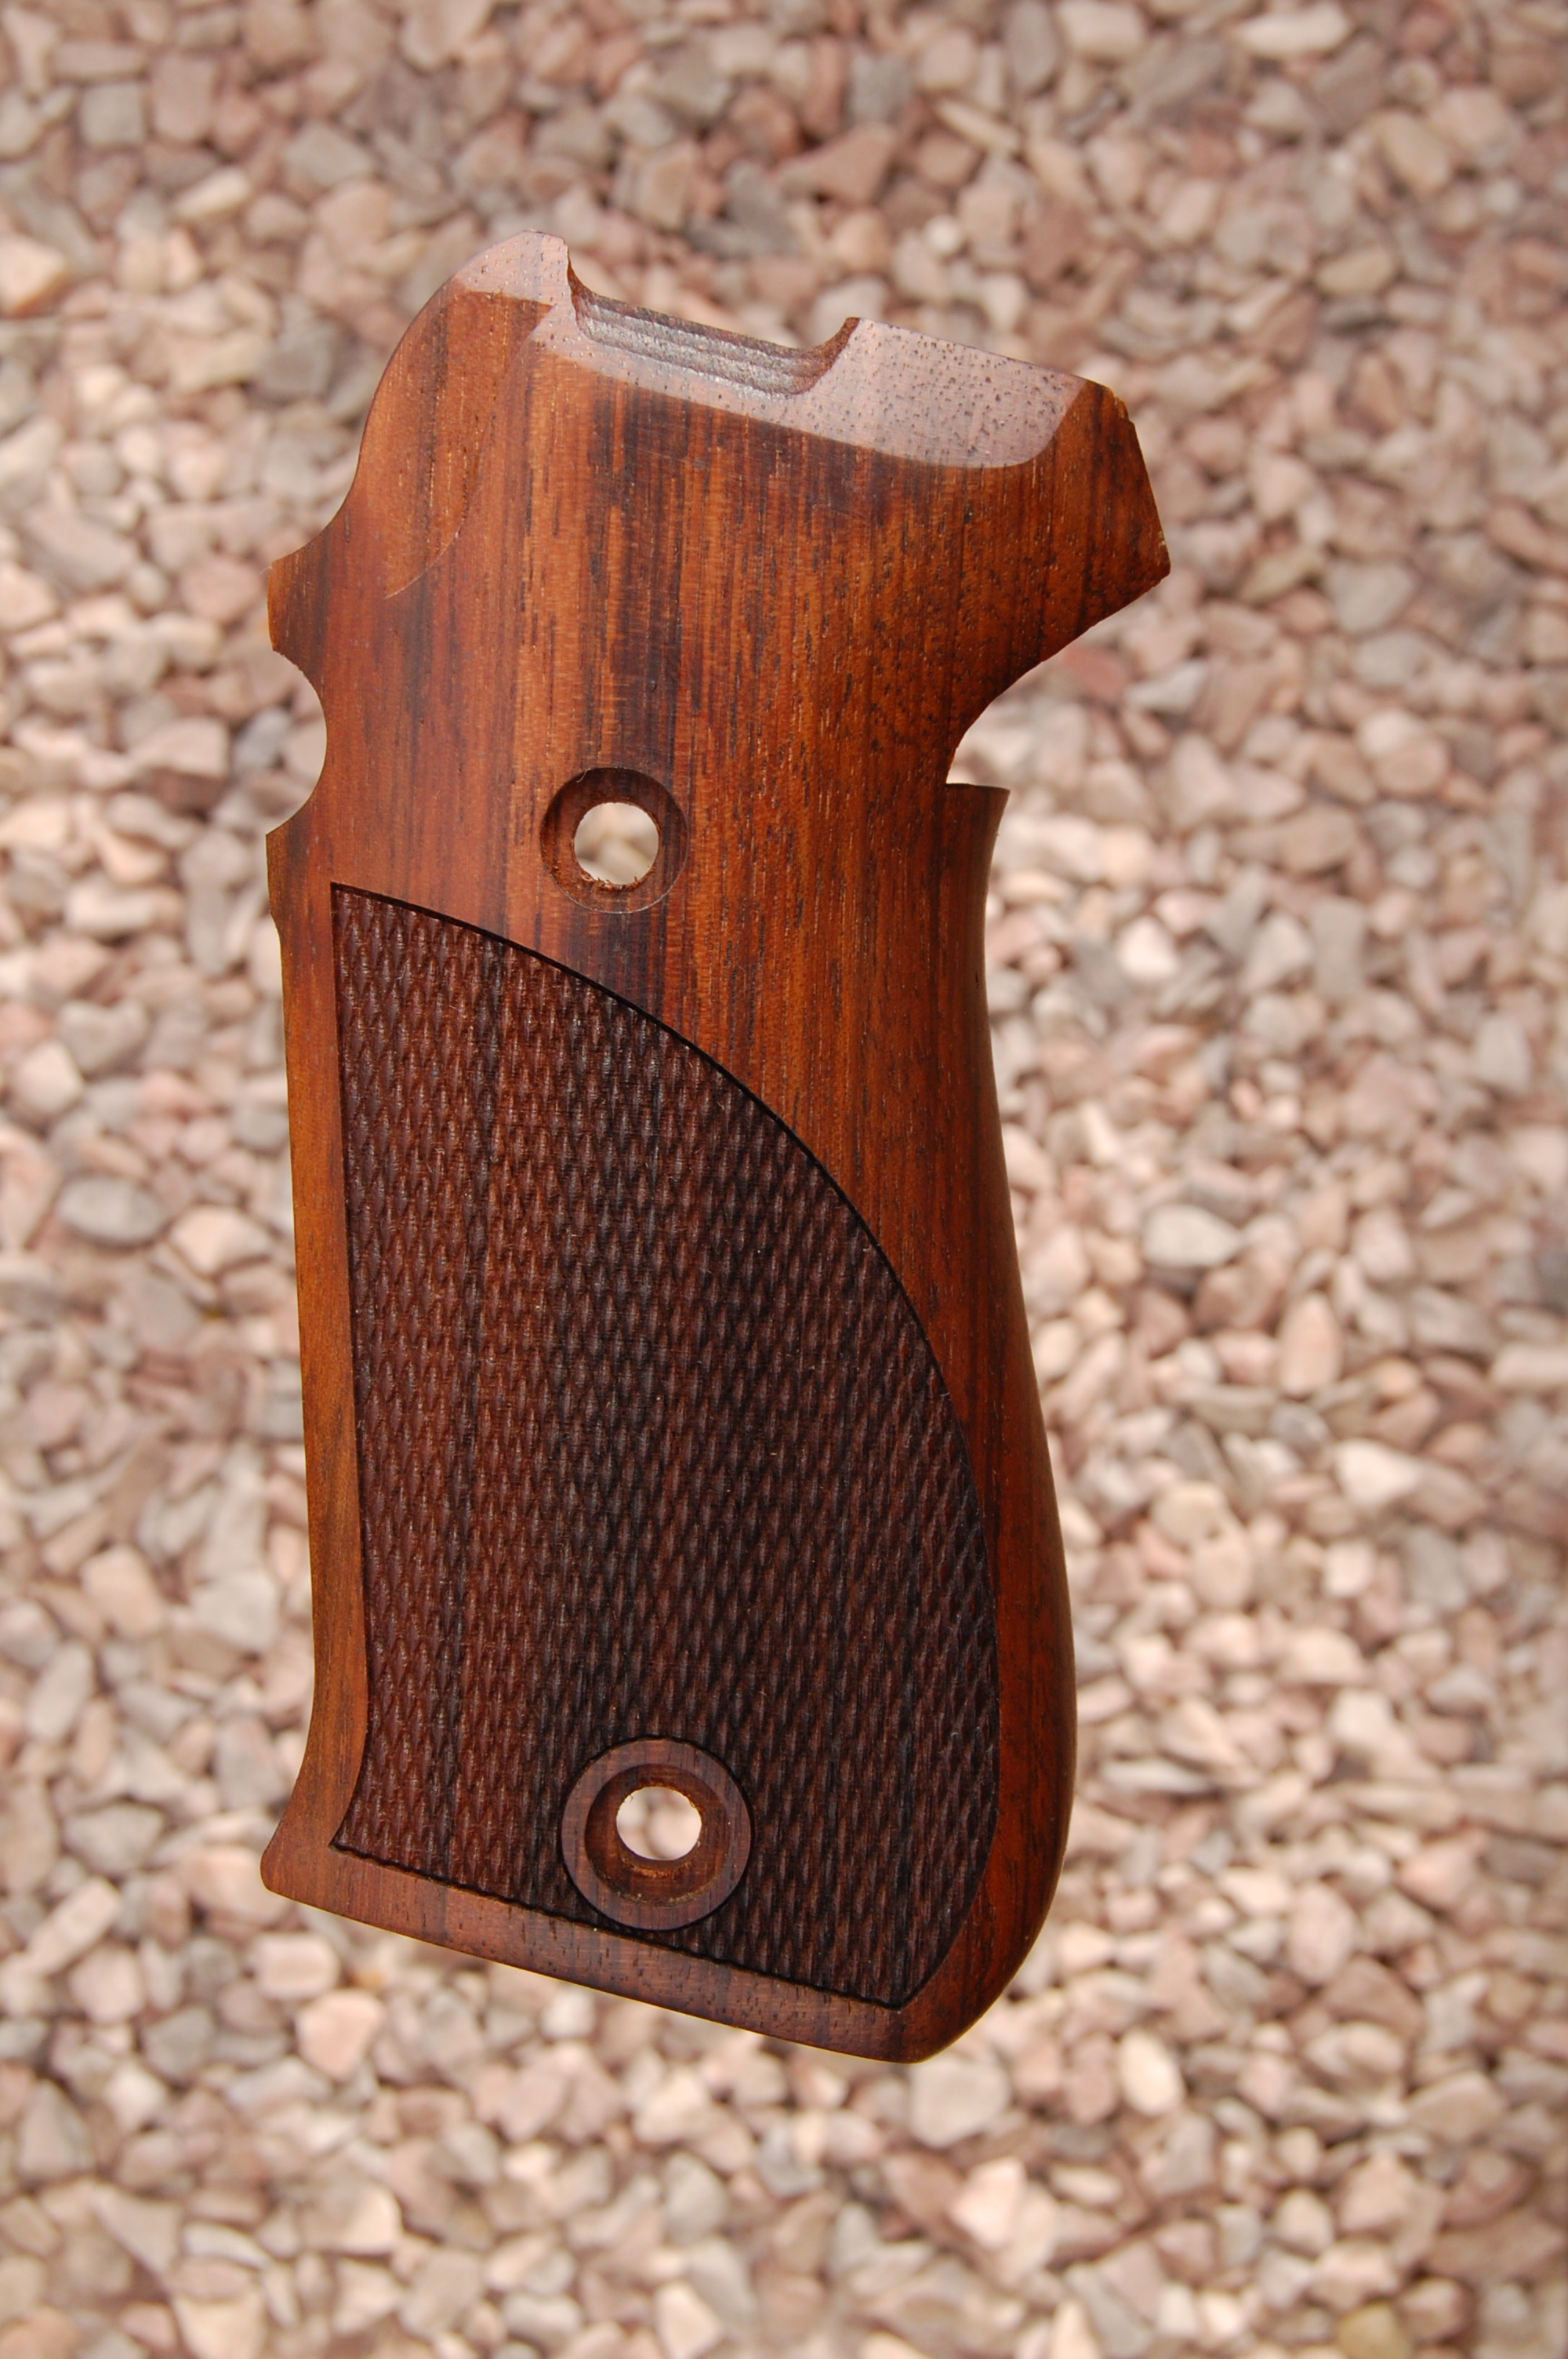 SIG P220 GRIPS (checkered) - full size